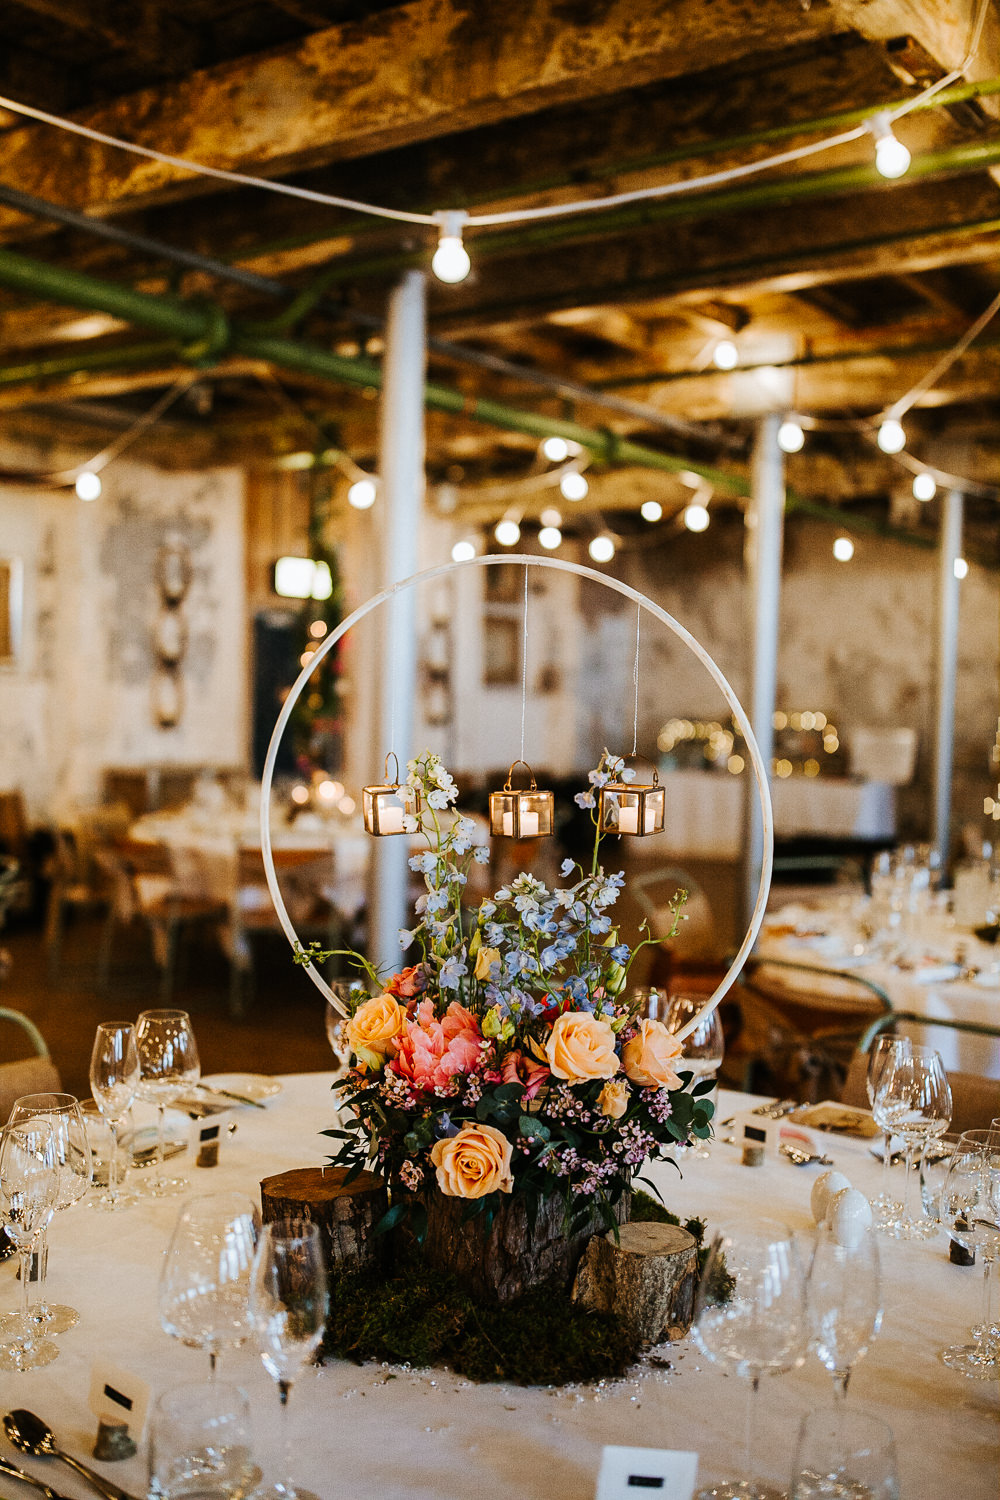 Centrepiece Hoop Circle Log Stand Flowers Moss Woodland Floral Peach Peony Coral Rose Candles Holmes Mill Wedding Emilie May Photography